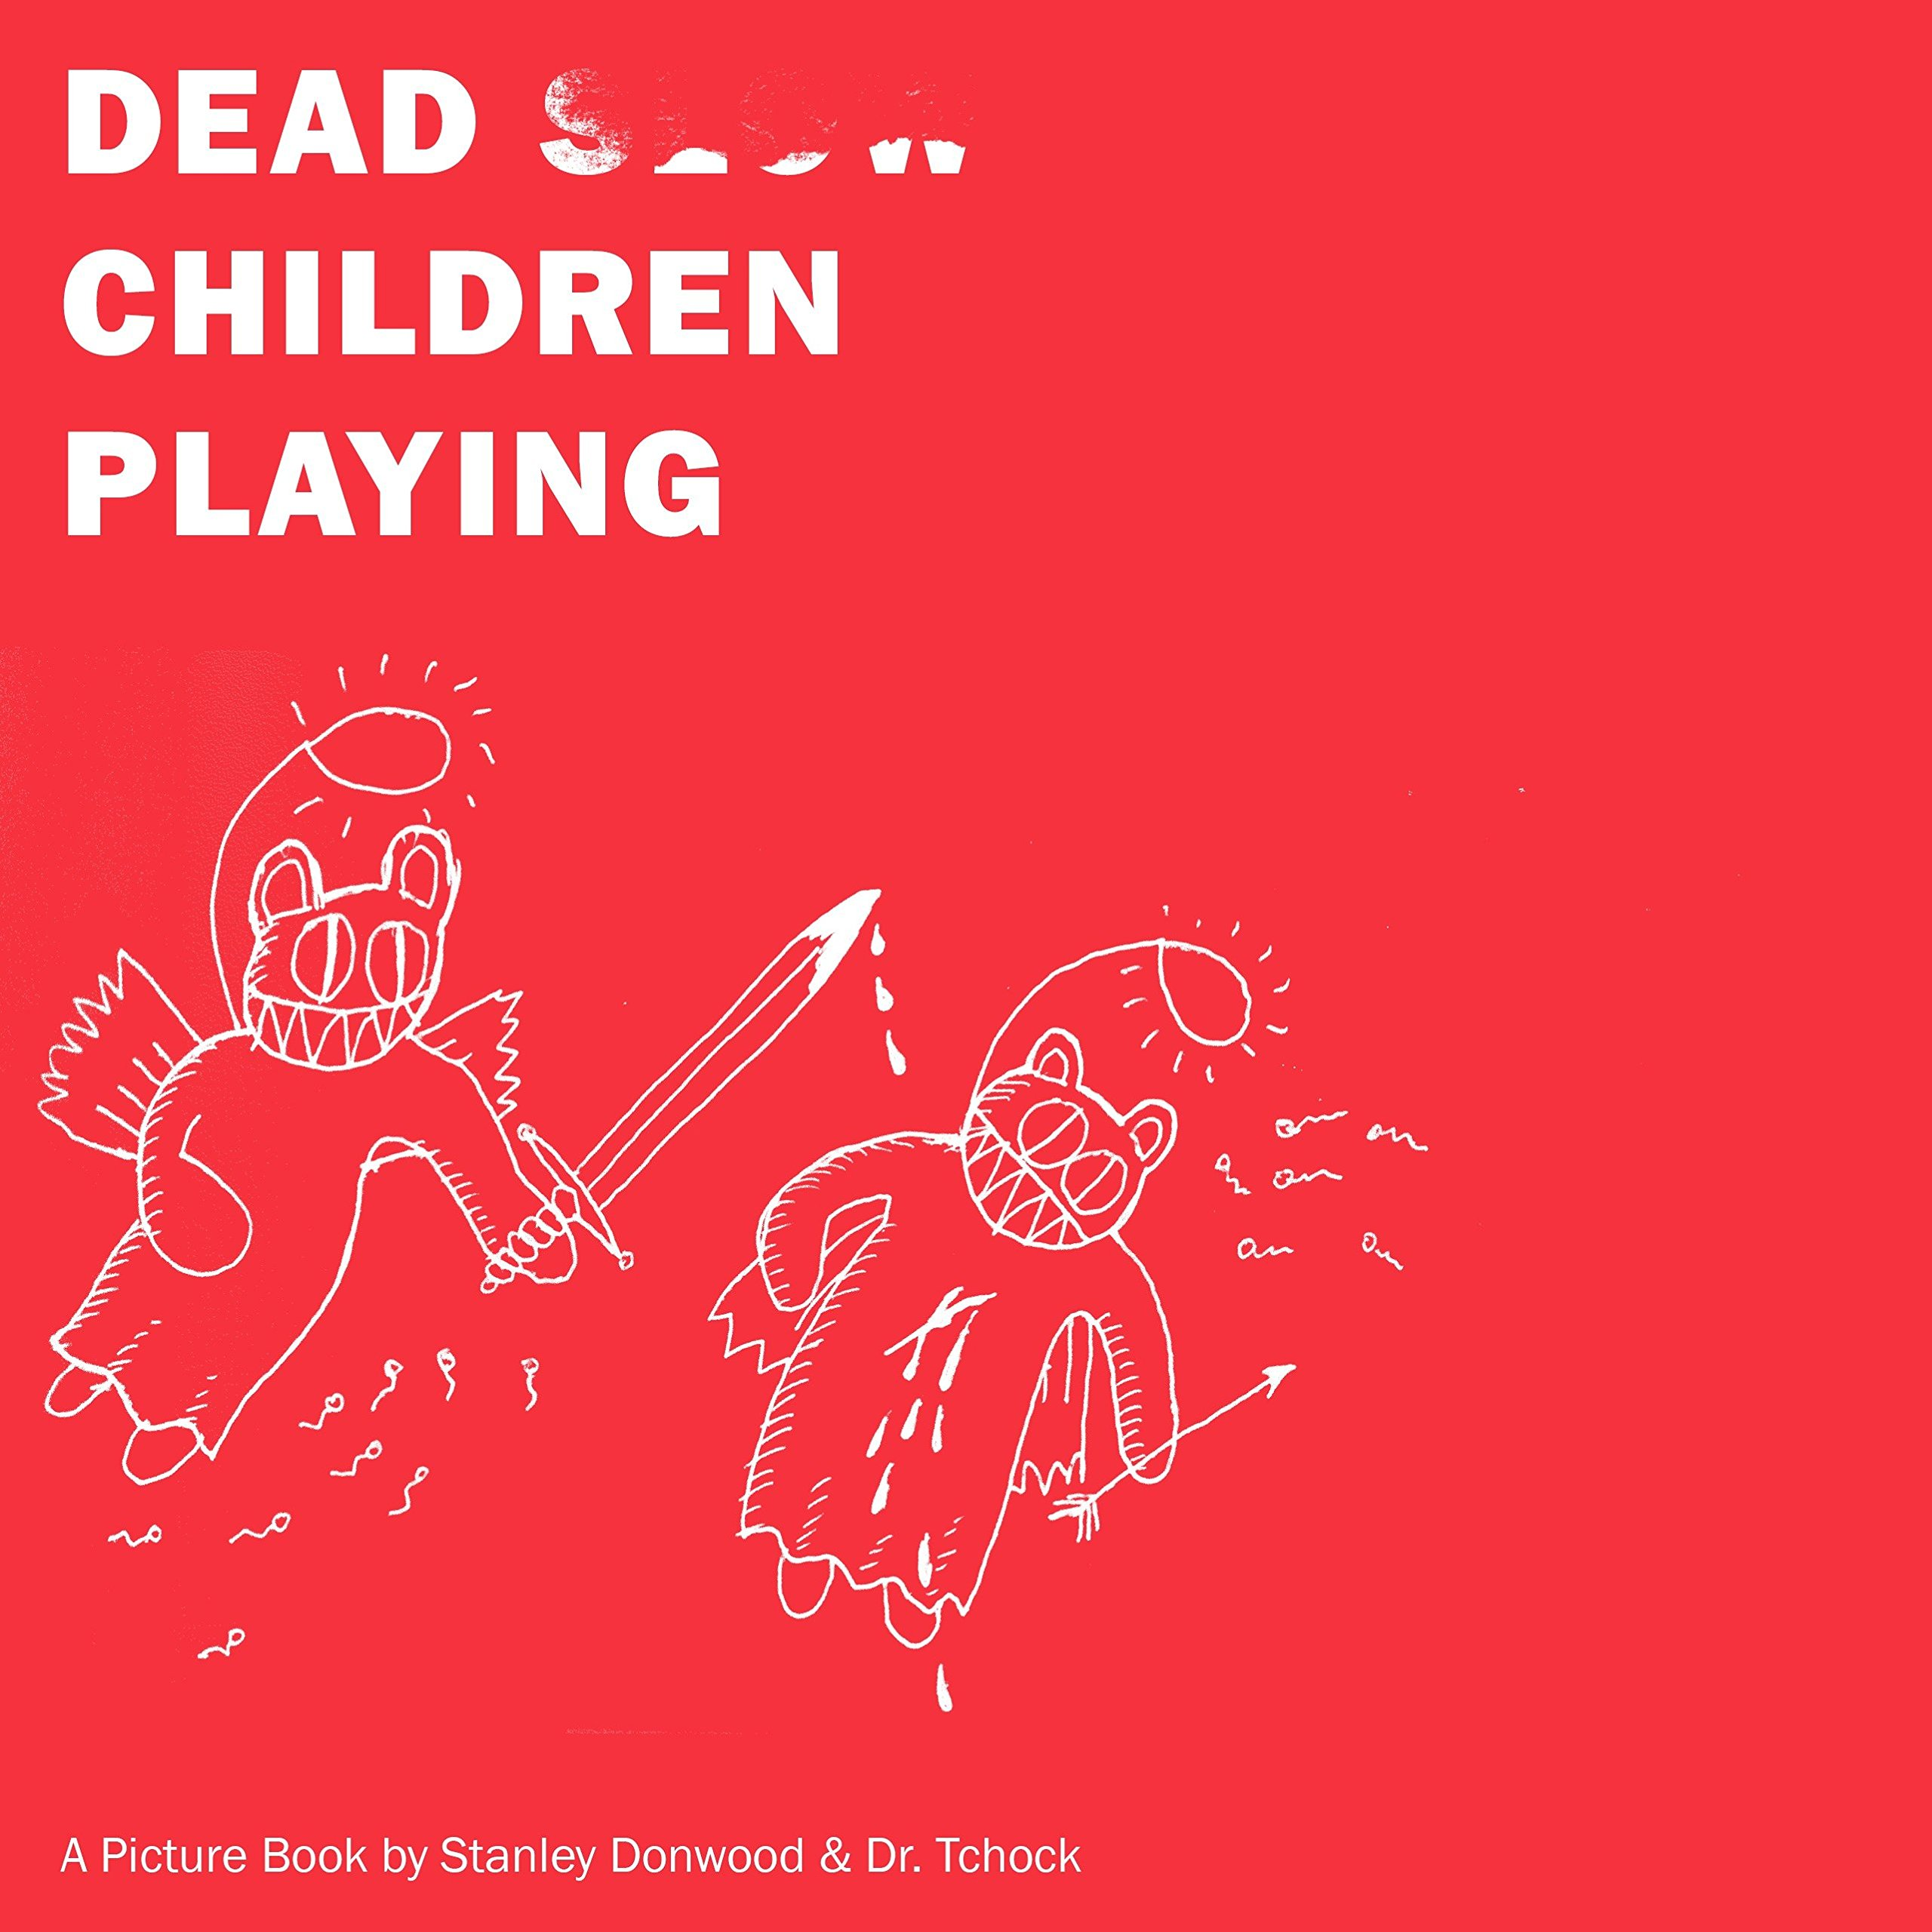 d1aa6945d Dead Children Playing  A Picture Book  Stanley Donwood